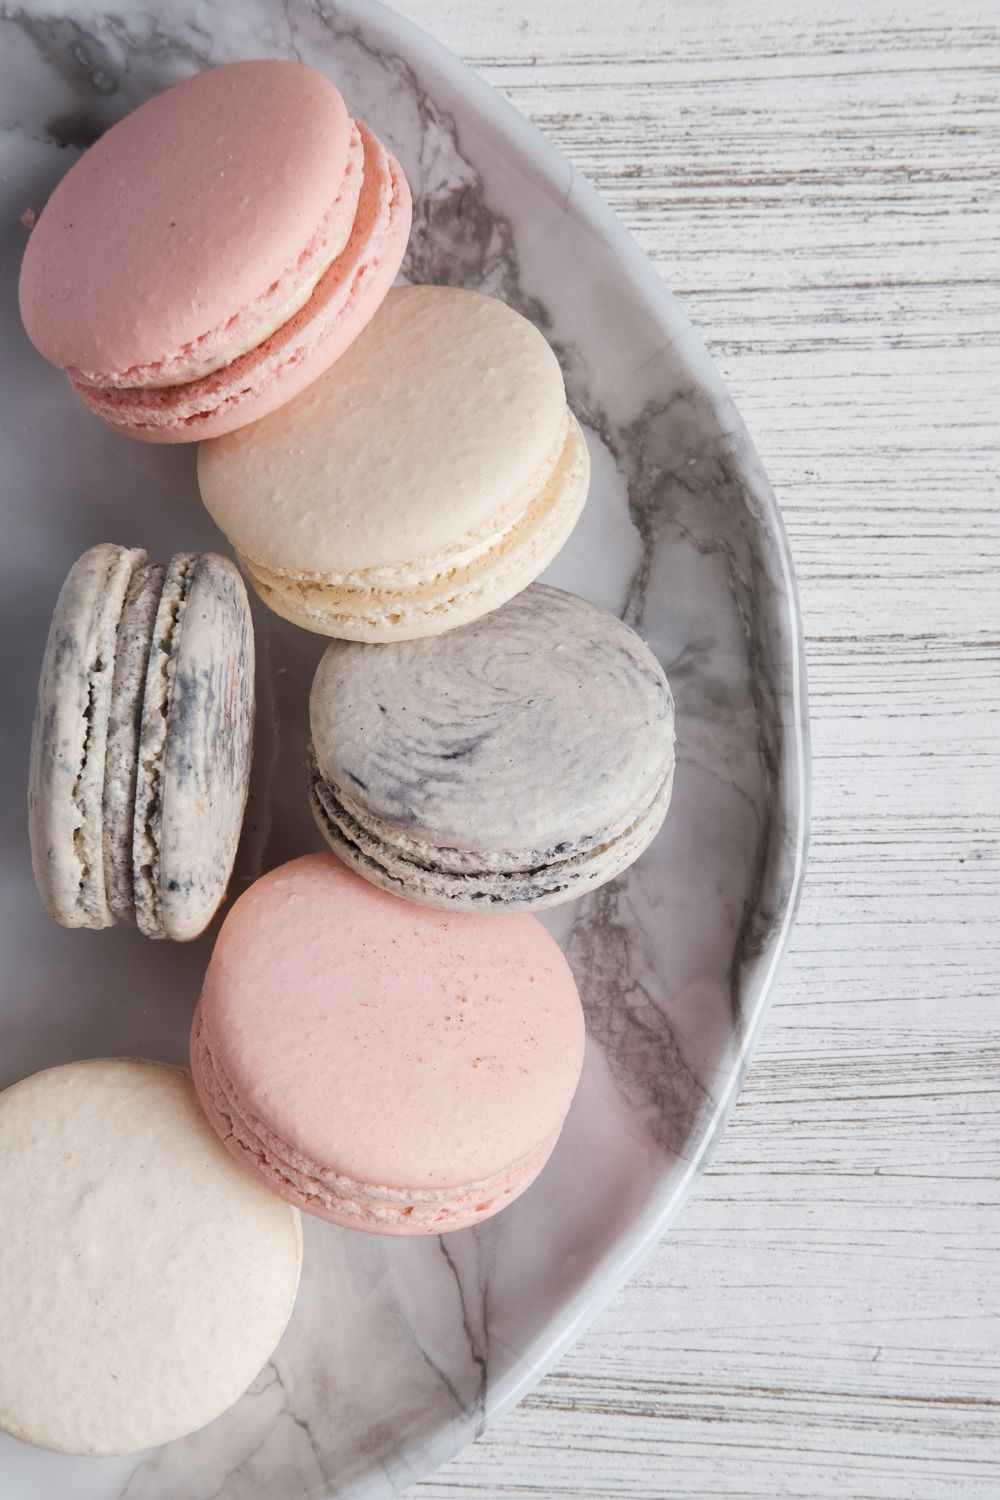 Food Photography How To Photograph Food French Macarons Dessert French Dessert Recipes Photographing Food Food